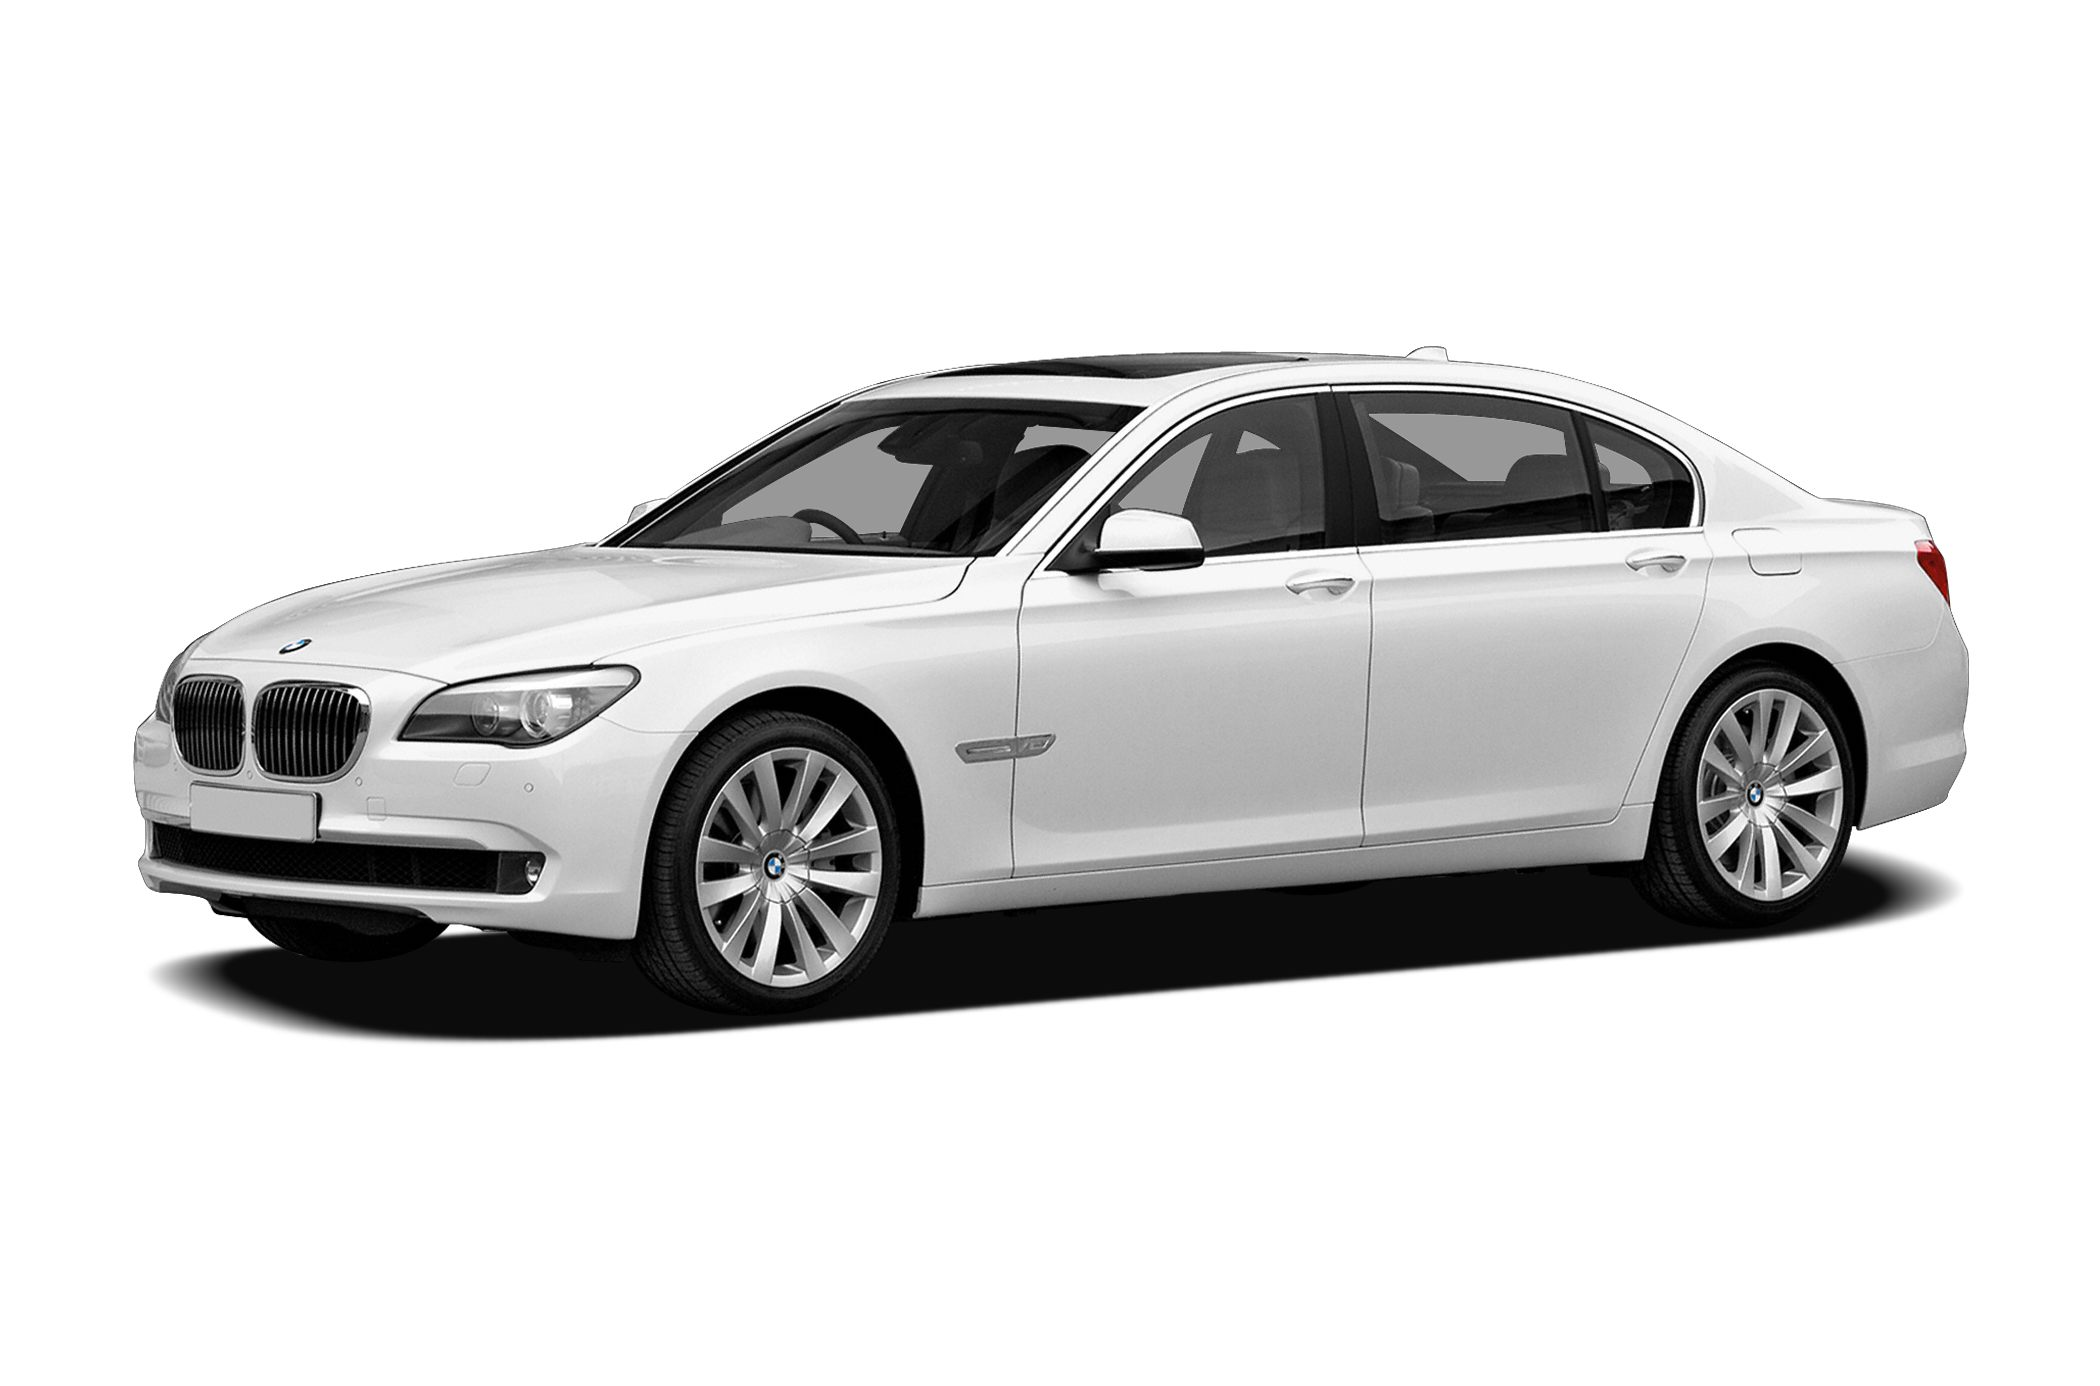 2010 BMW 760 Specs and Prices